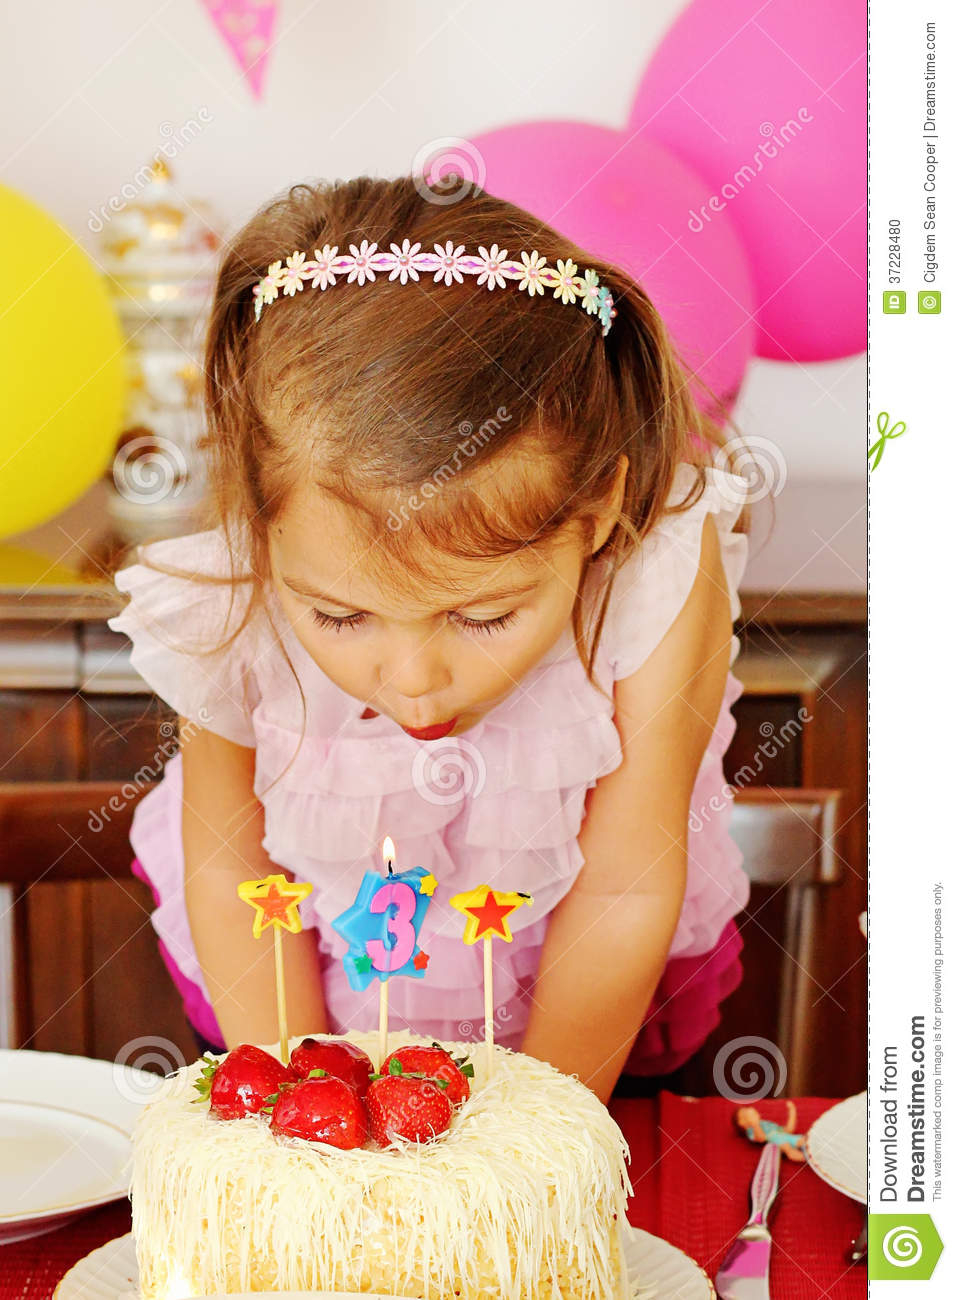 Little girl blowing the candles